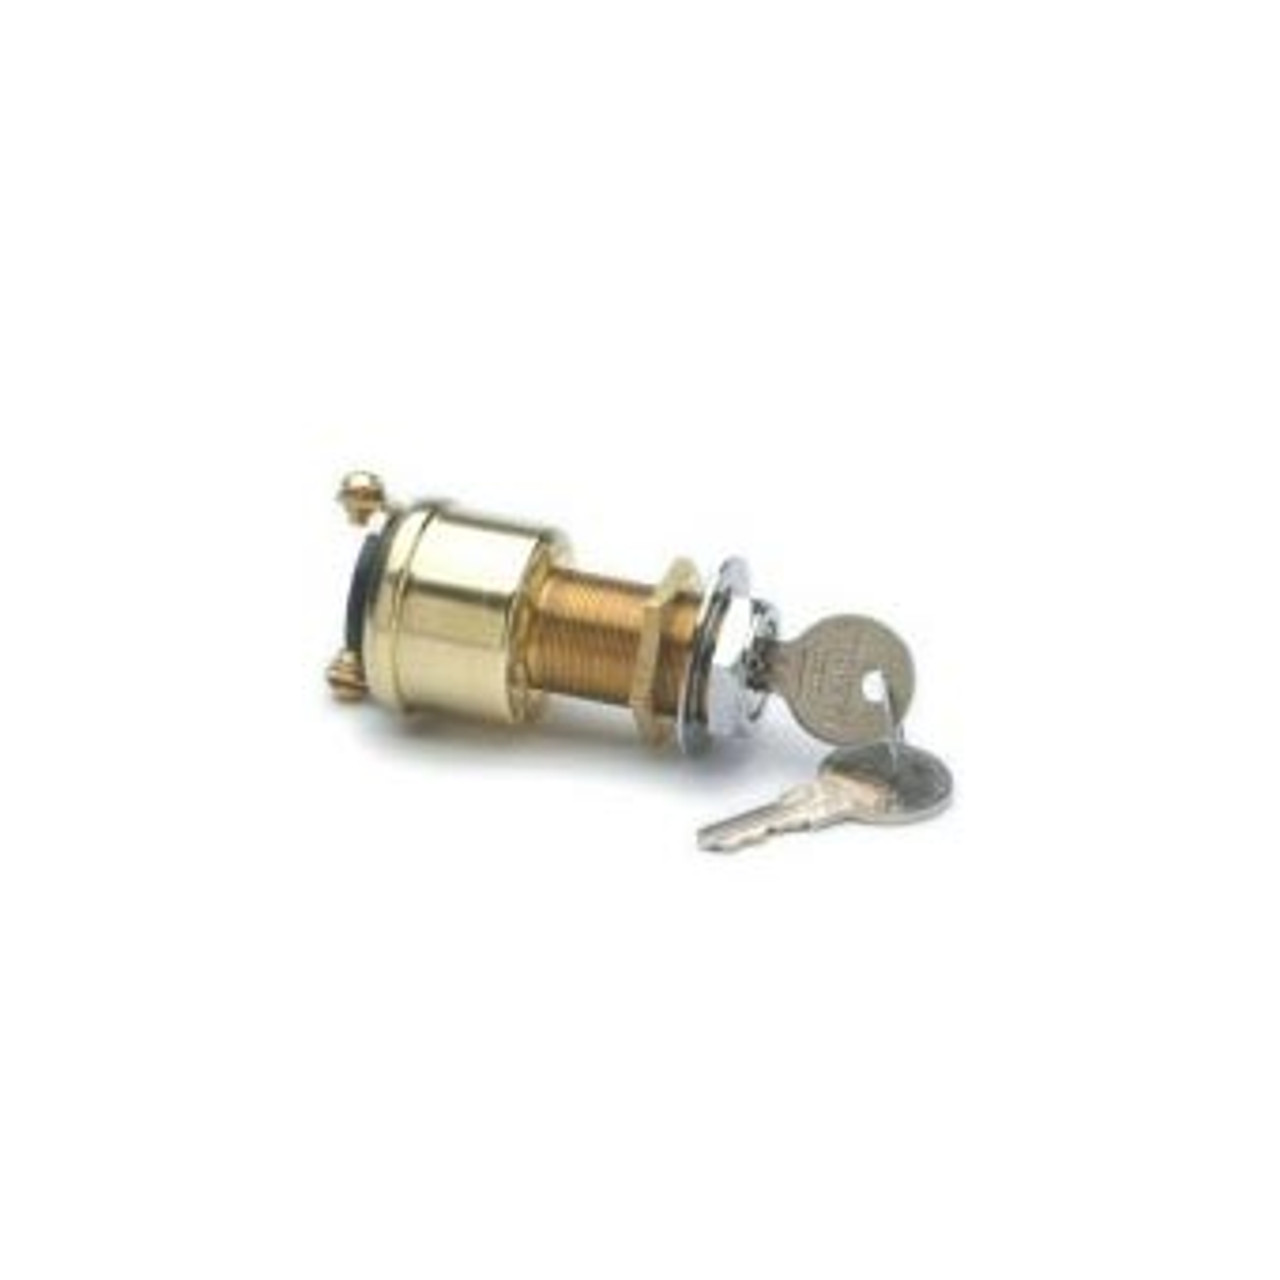 BAT. MARINE IGN SWITCH 2P 2 KEYS W/BRASS 2 SCREW T